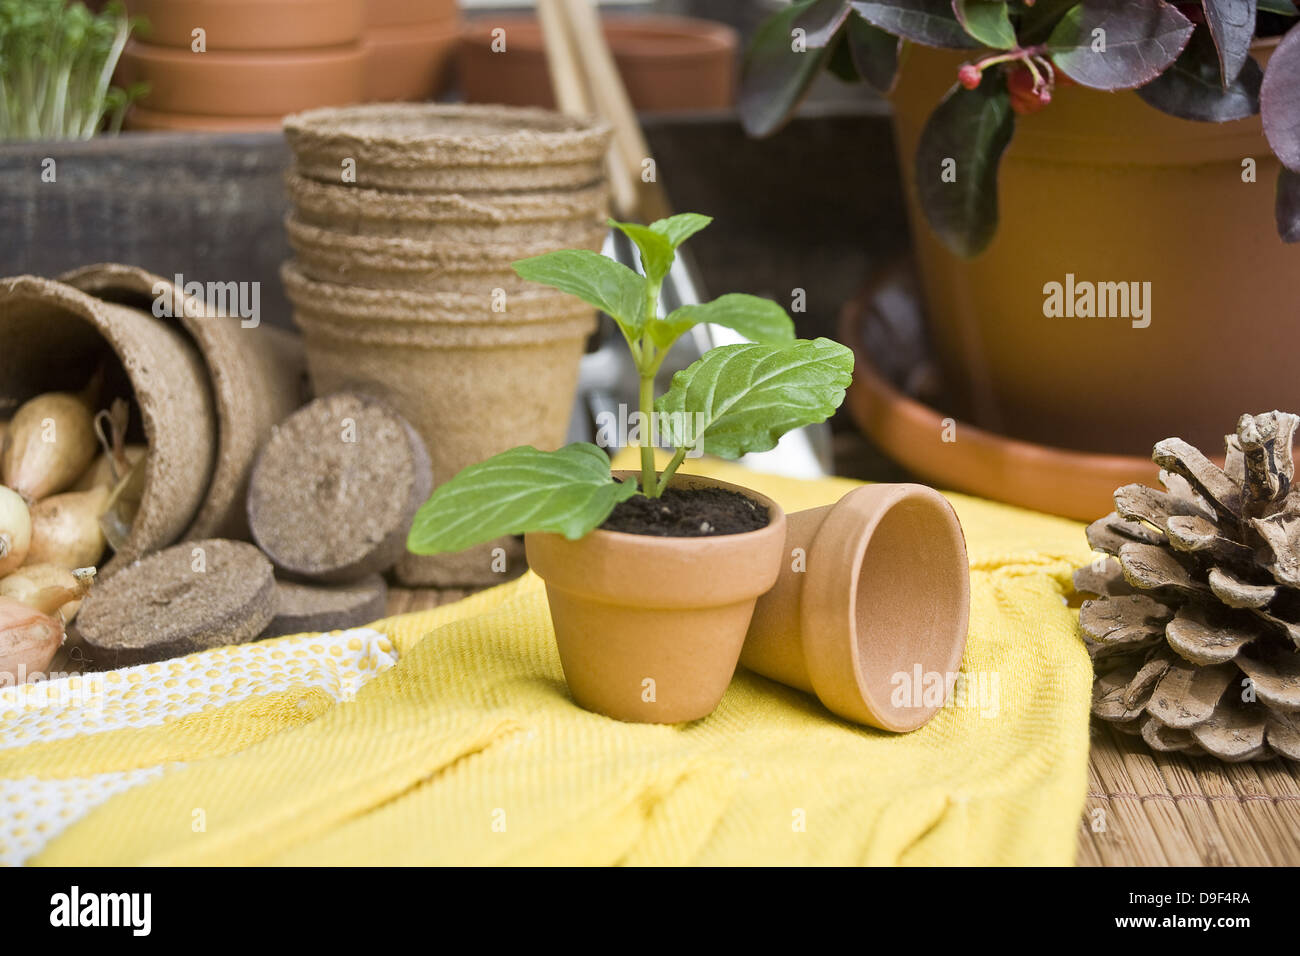 Setzling in a flowerpot with gloves Seedling in a pot with gloves - Stock Image